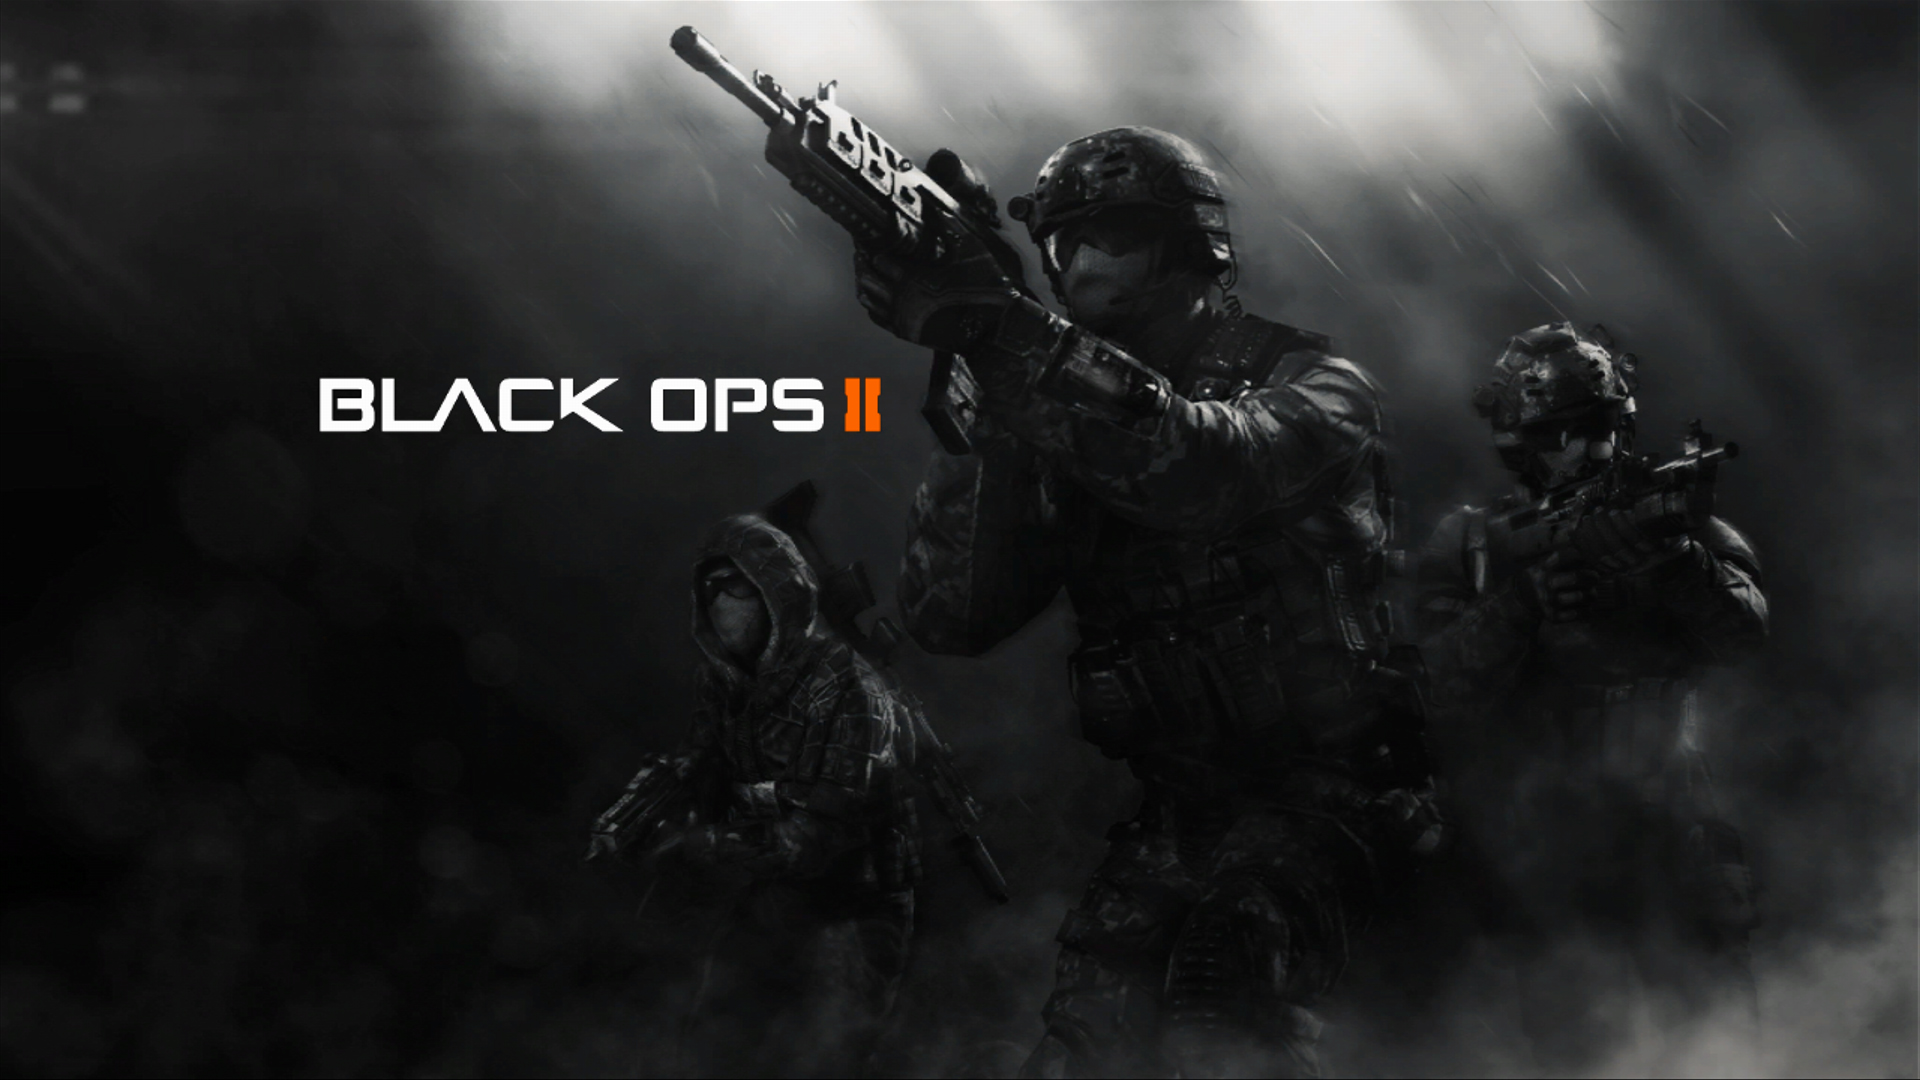 Call Of Duty Black Ops II Full HD Wallpaper And Background Image